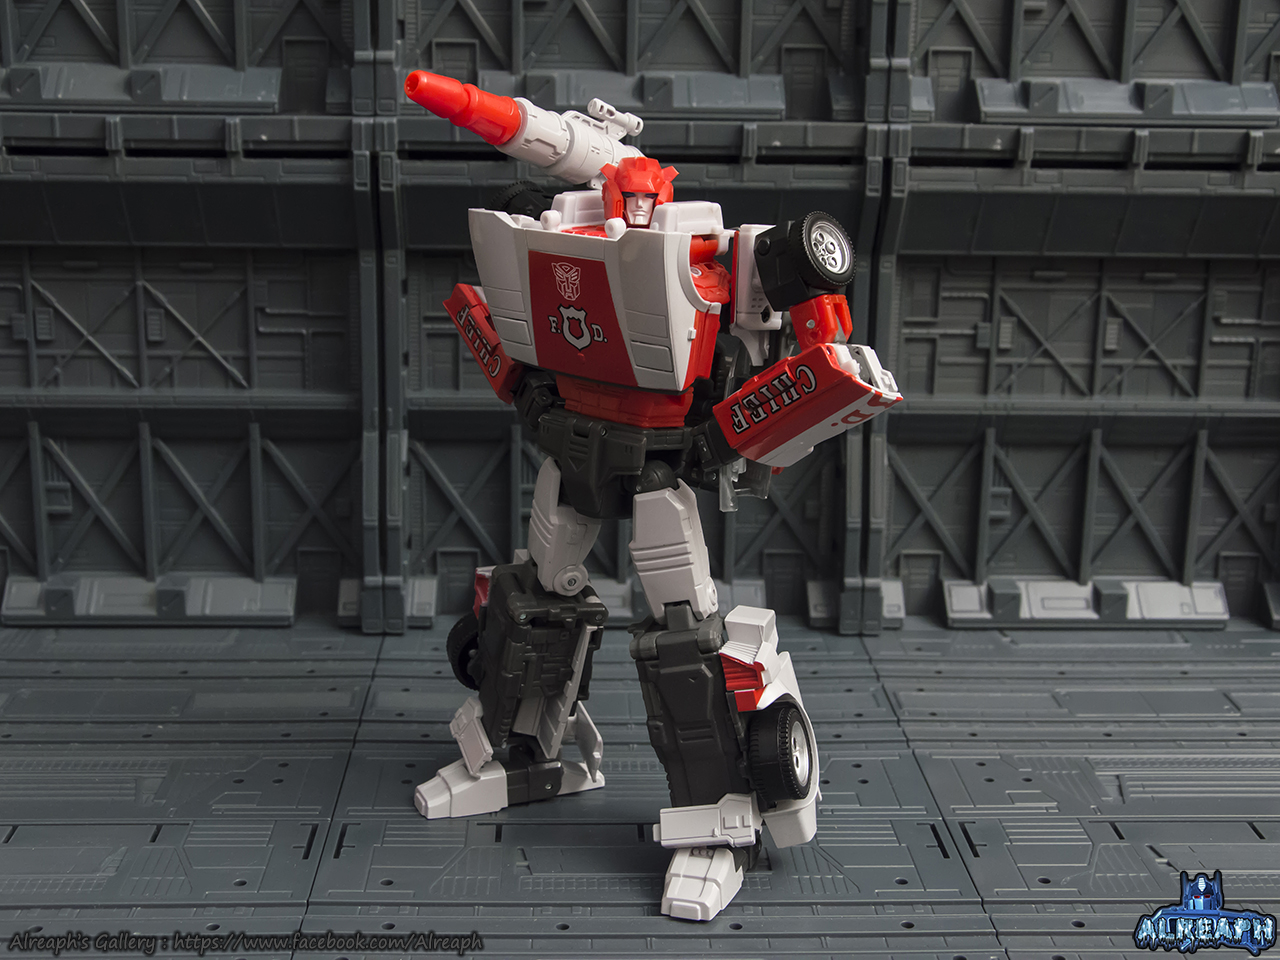 [Masterpiece] MP-14 Red Alert/Feu d'Alerte - Page 2 B8IxDQVx